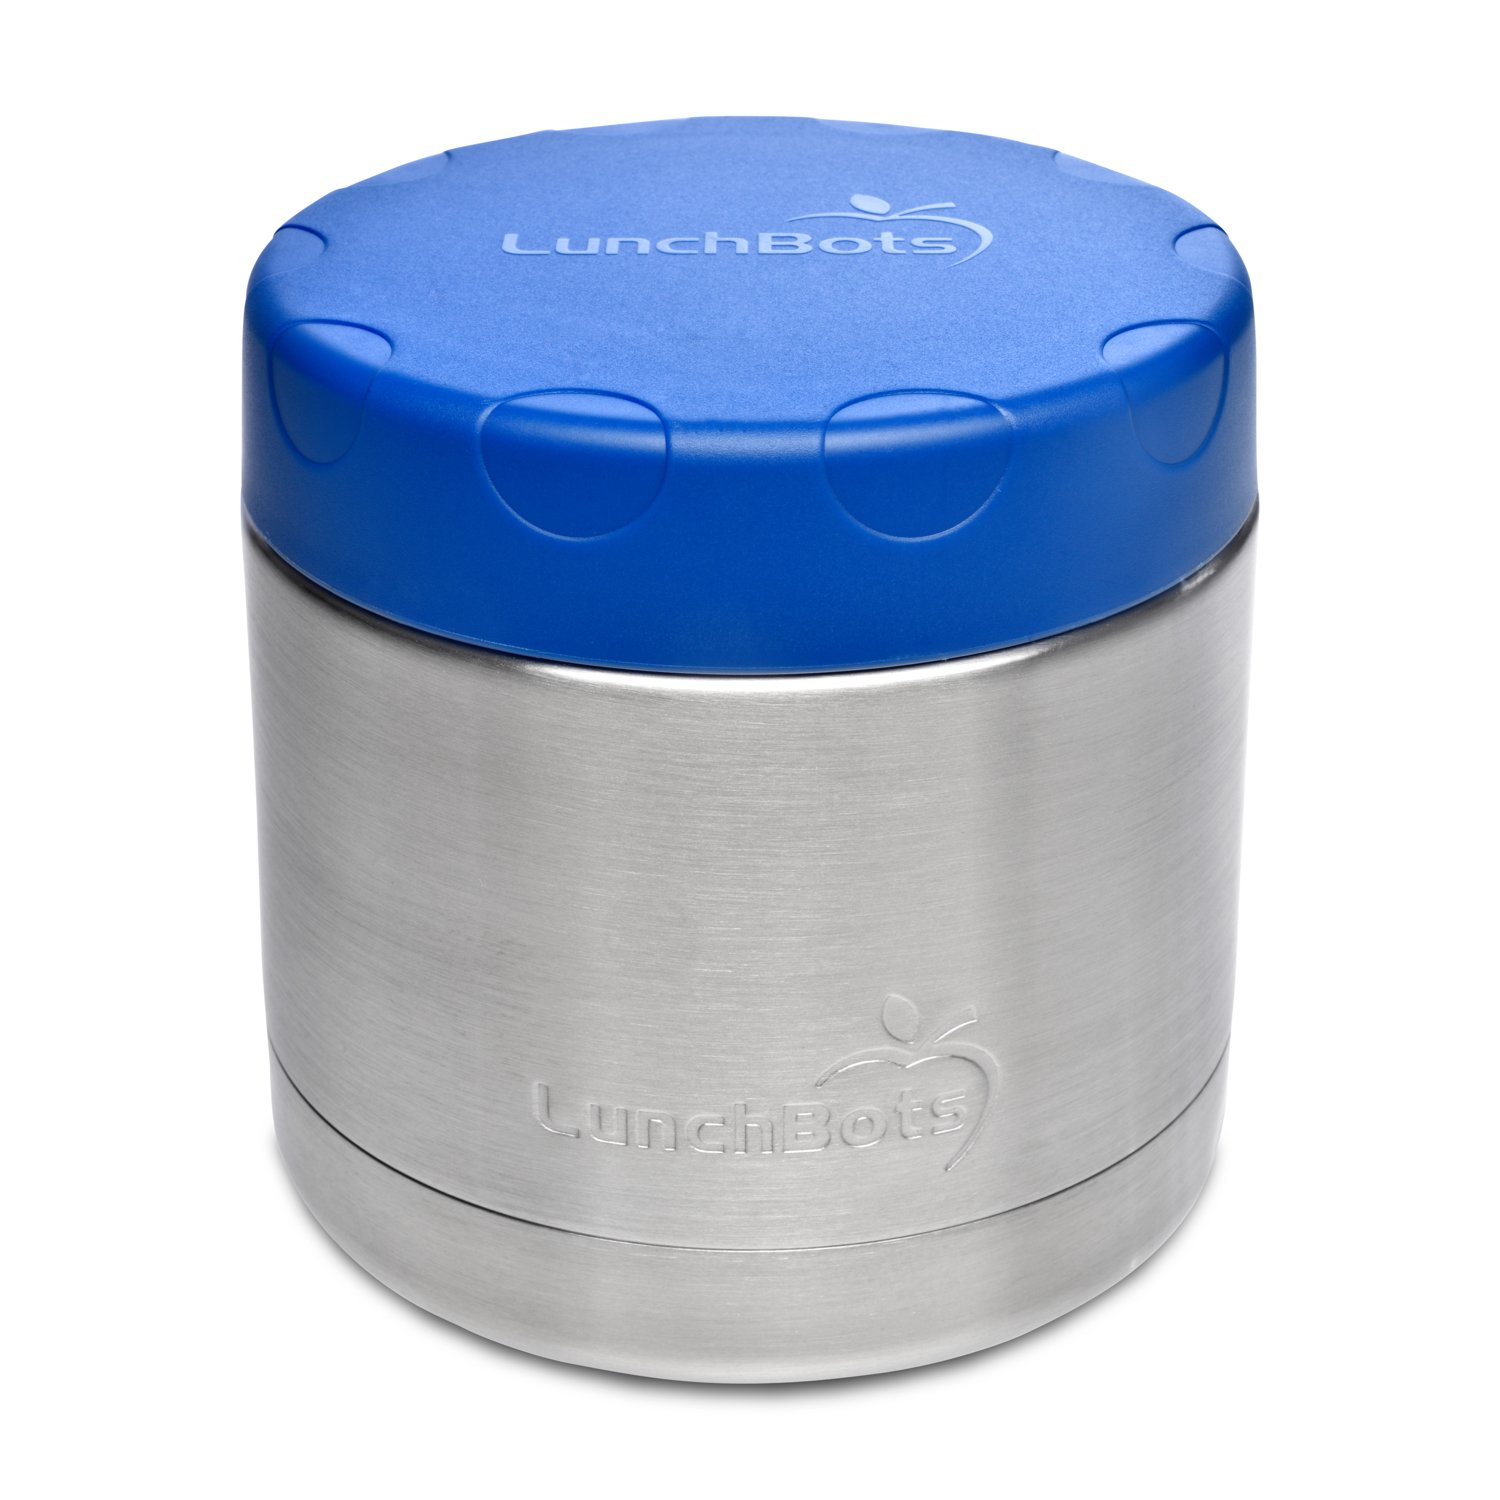 d4216beca793 LunchBots 16oz Thermal Stainless Steel Wide Mouth Thermos - Insulated  Container with Lid Keeps Food Hot or Cold for Hours - Leak-Proof Portable  ...